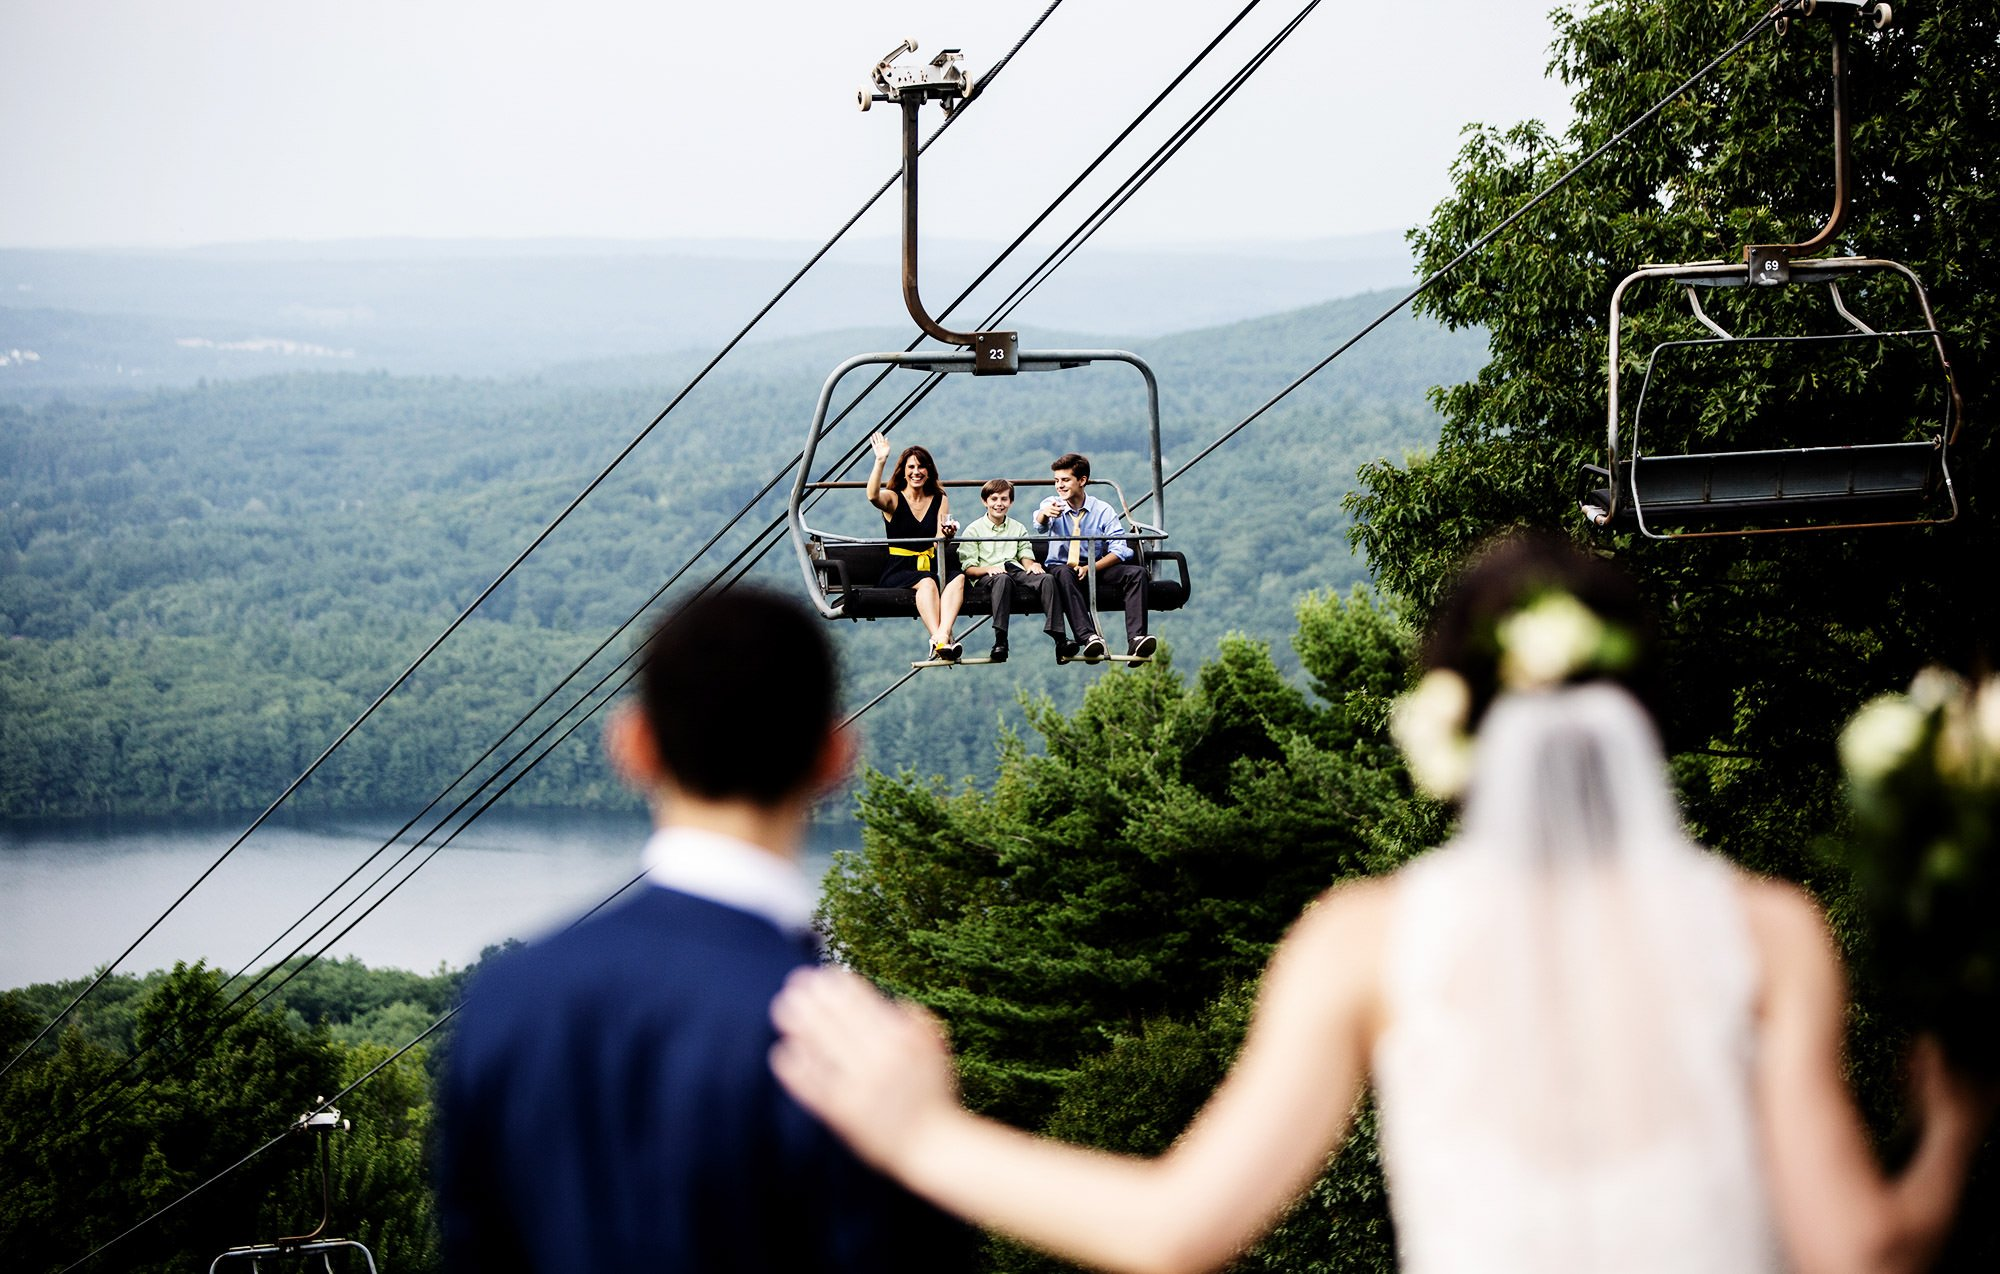 The Bride and Groom greet their guests on the ski lift during cocktail hour of their Wachusett Mountain Wedding.